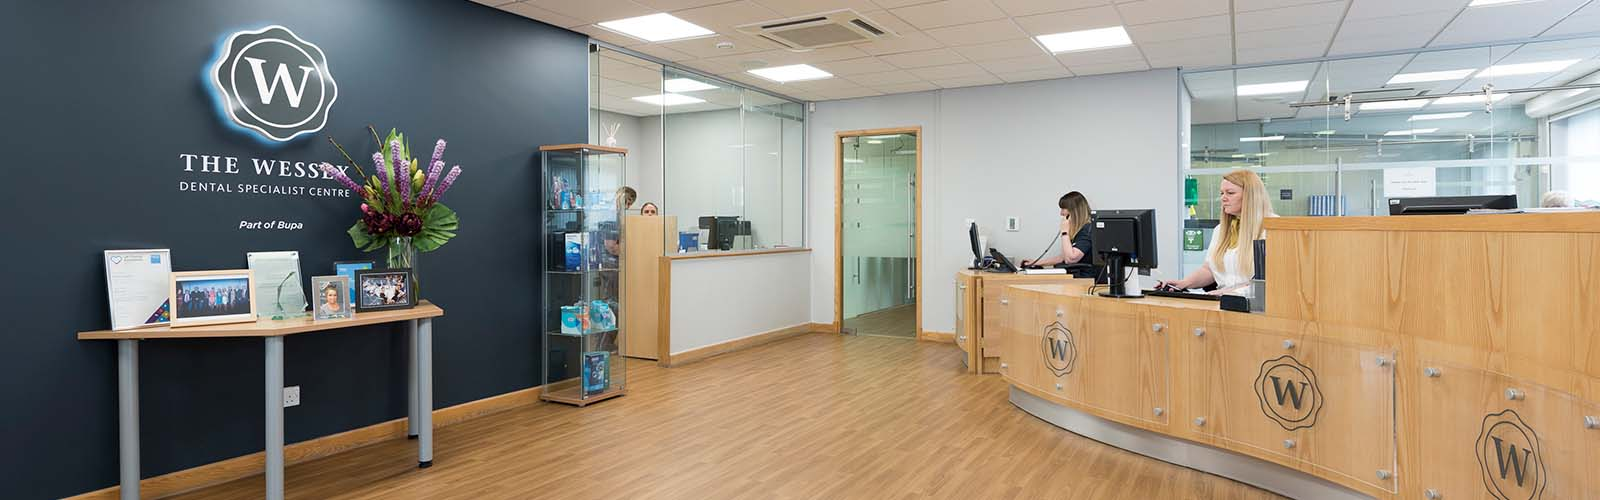 The Wessex Dental Specialist Centre